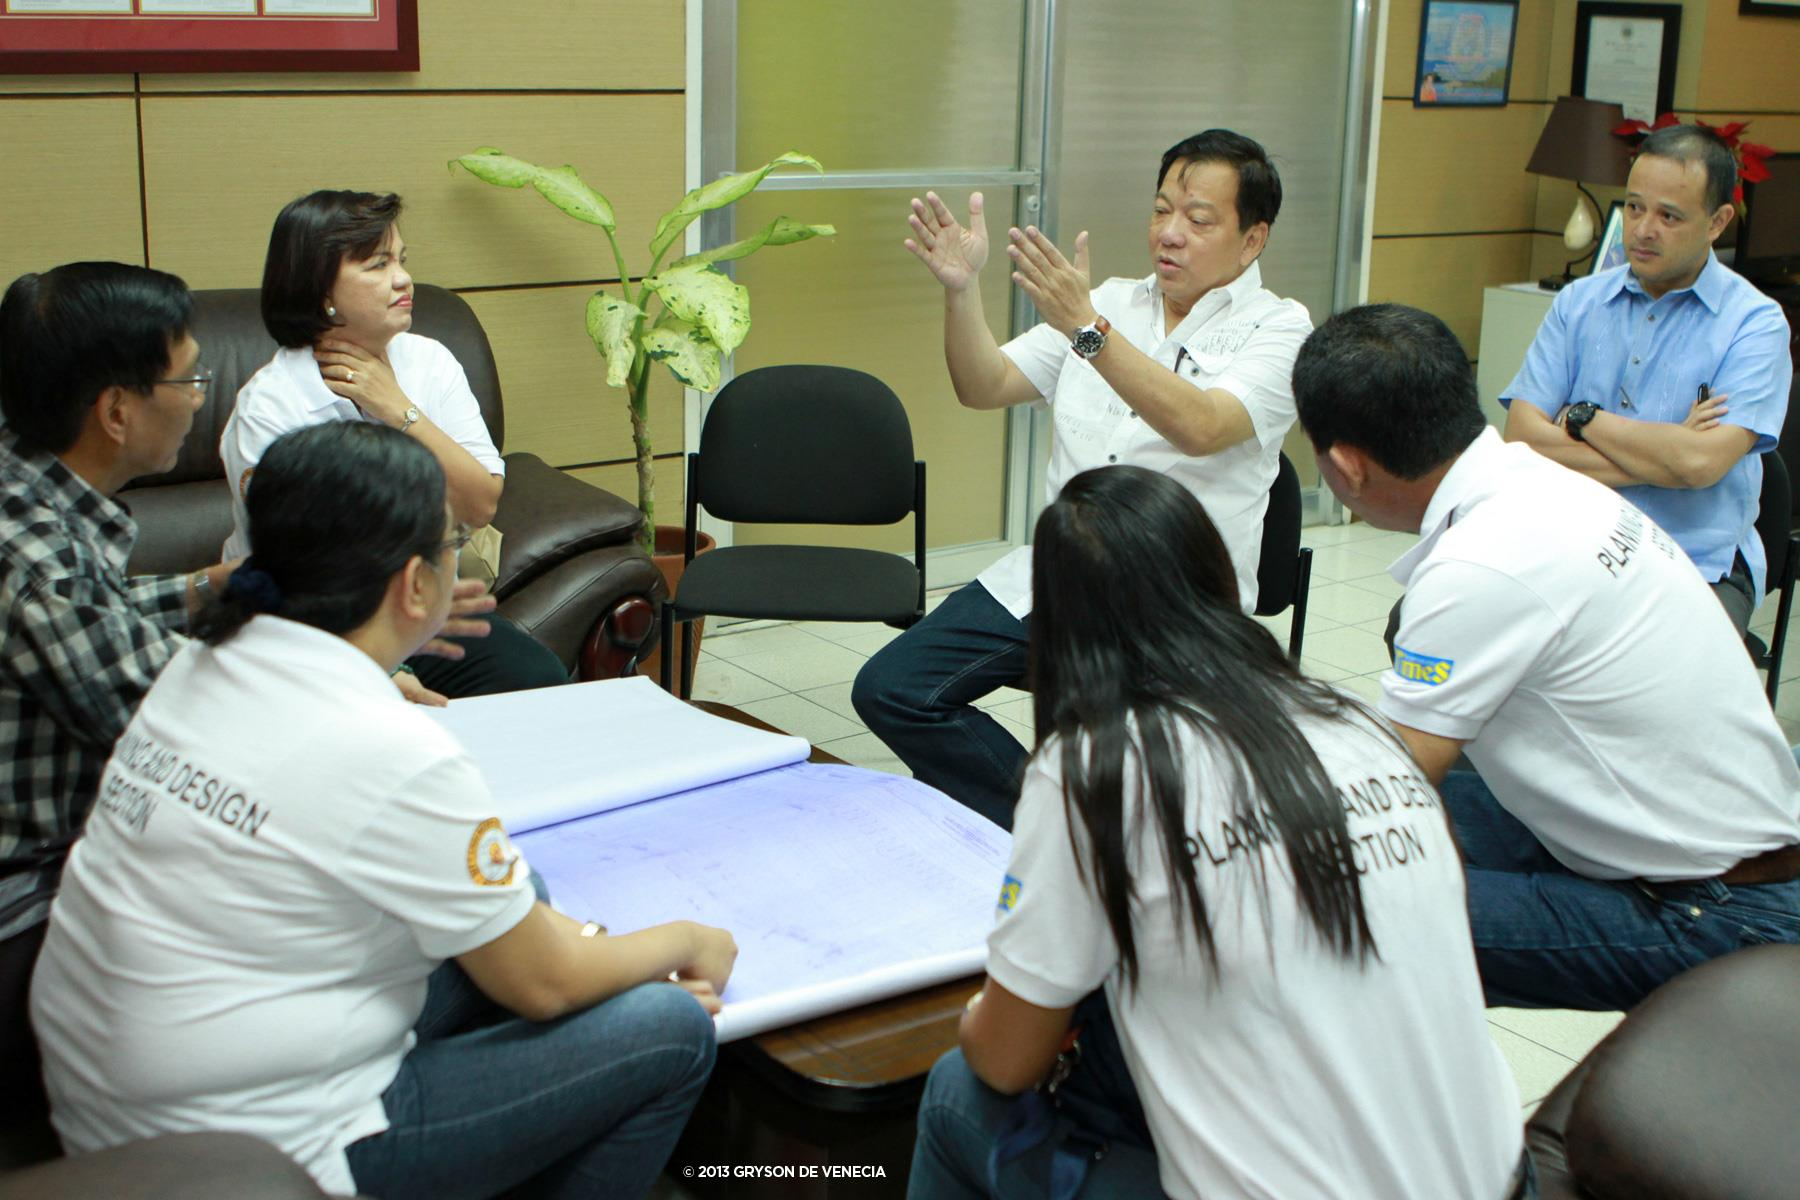 district engineers of dpwh http://northwatch.wordpress.com/2013/01/page/2/